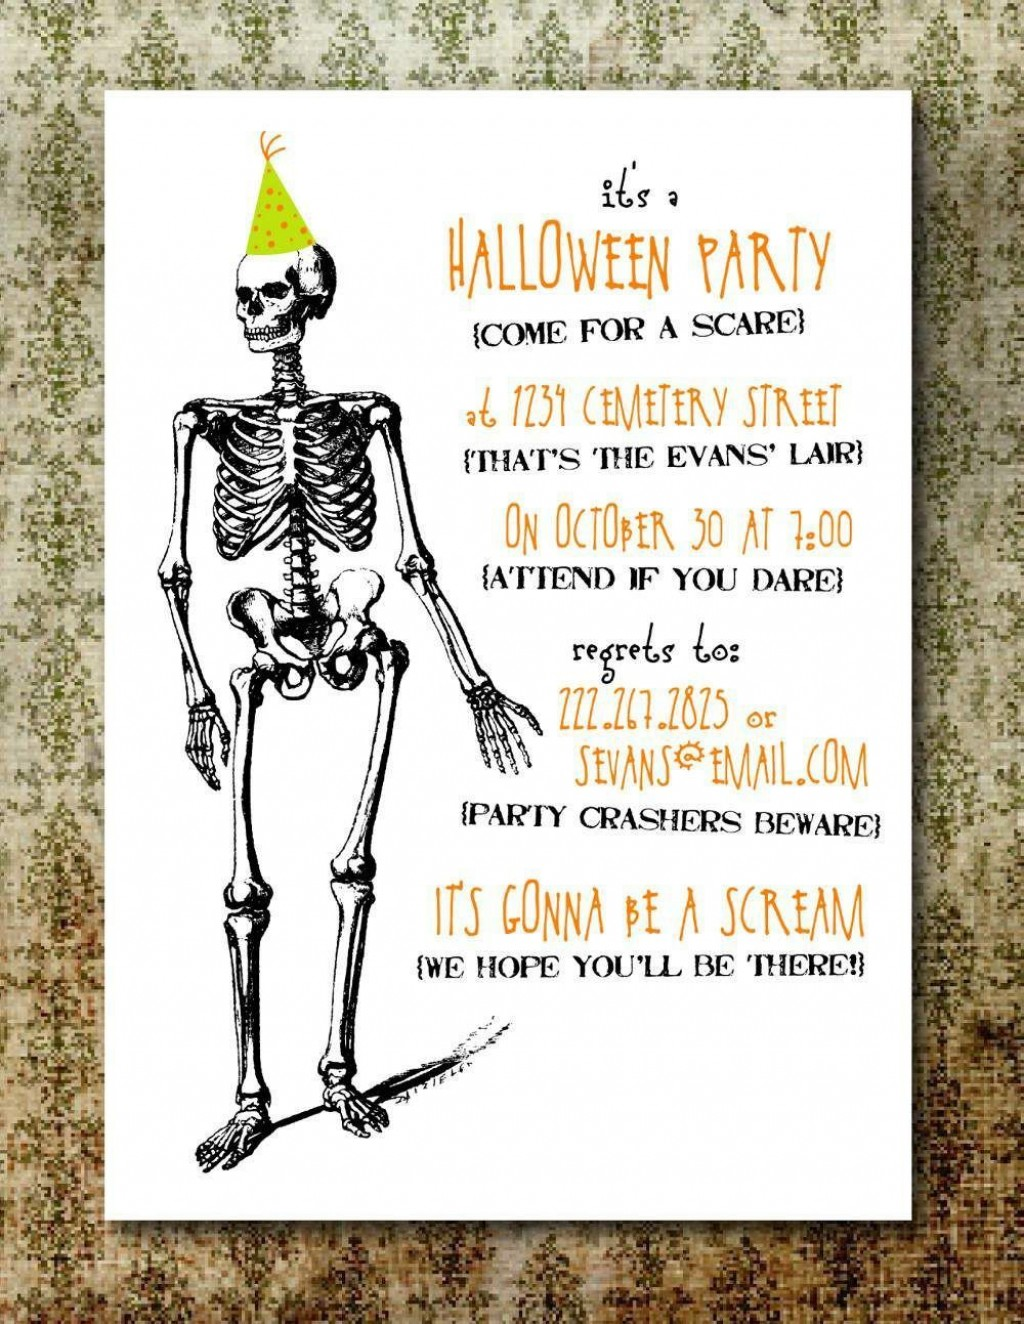 007 Excellent Halloween Party Invite Template Photo  Templates - Free Printable Spooky Invitation BirthdayLarge